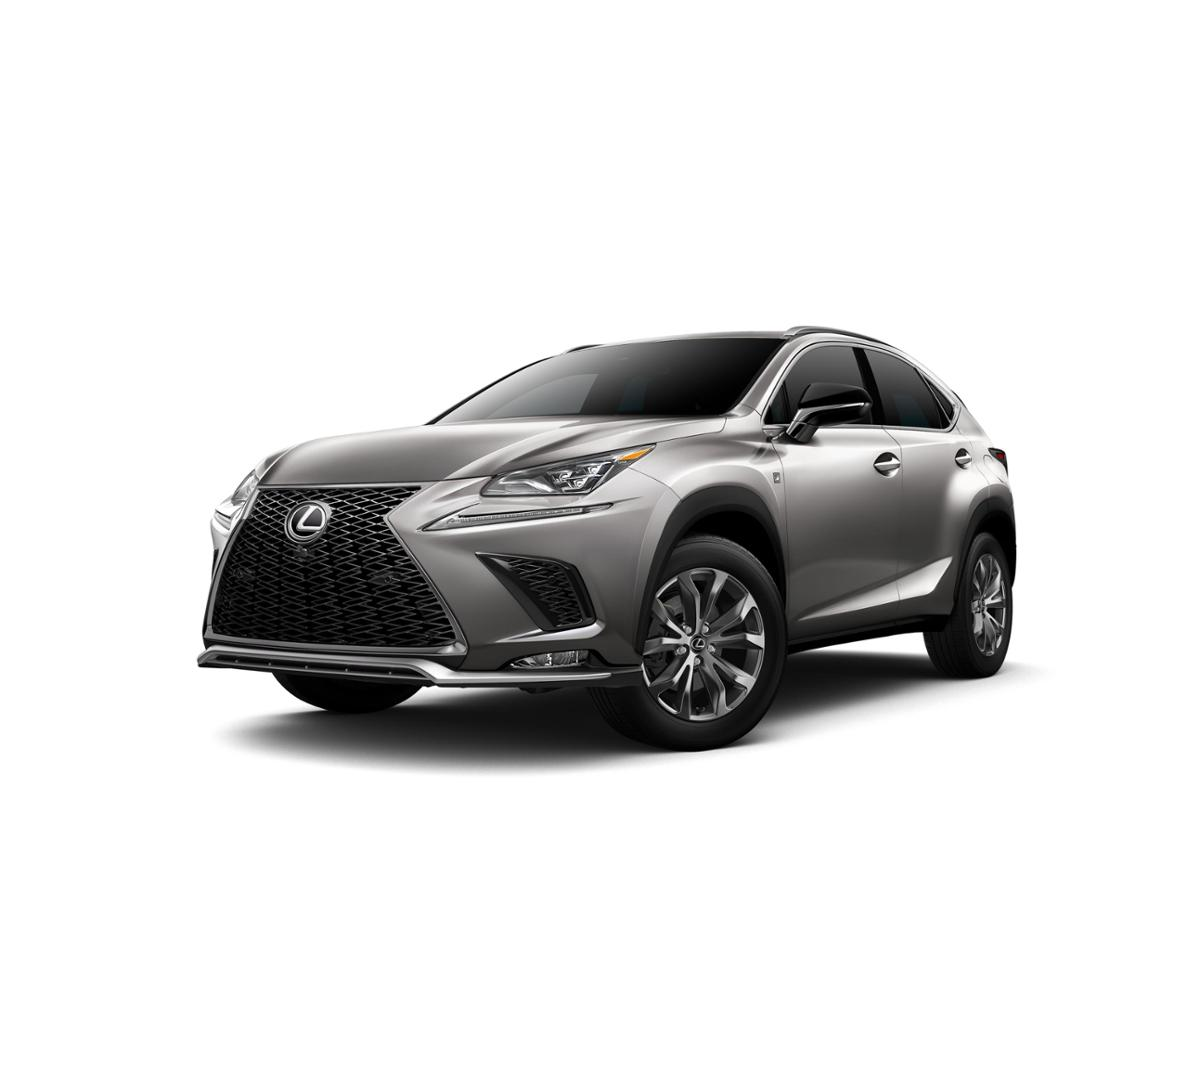 2018 Lexus NX 300 Vehicle Photo in Oakhurst, NJ 07755